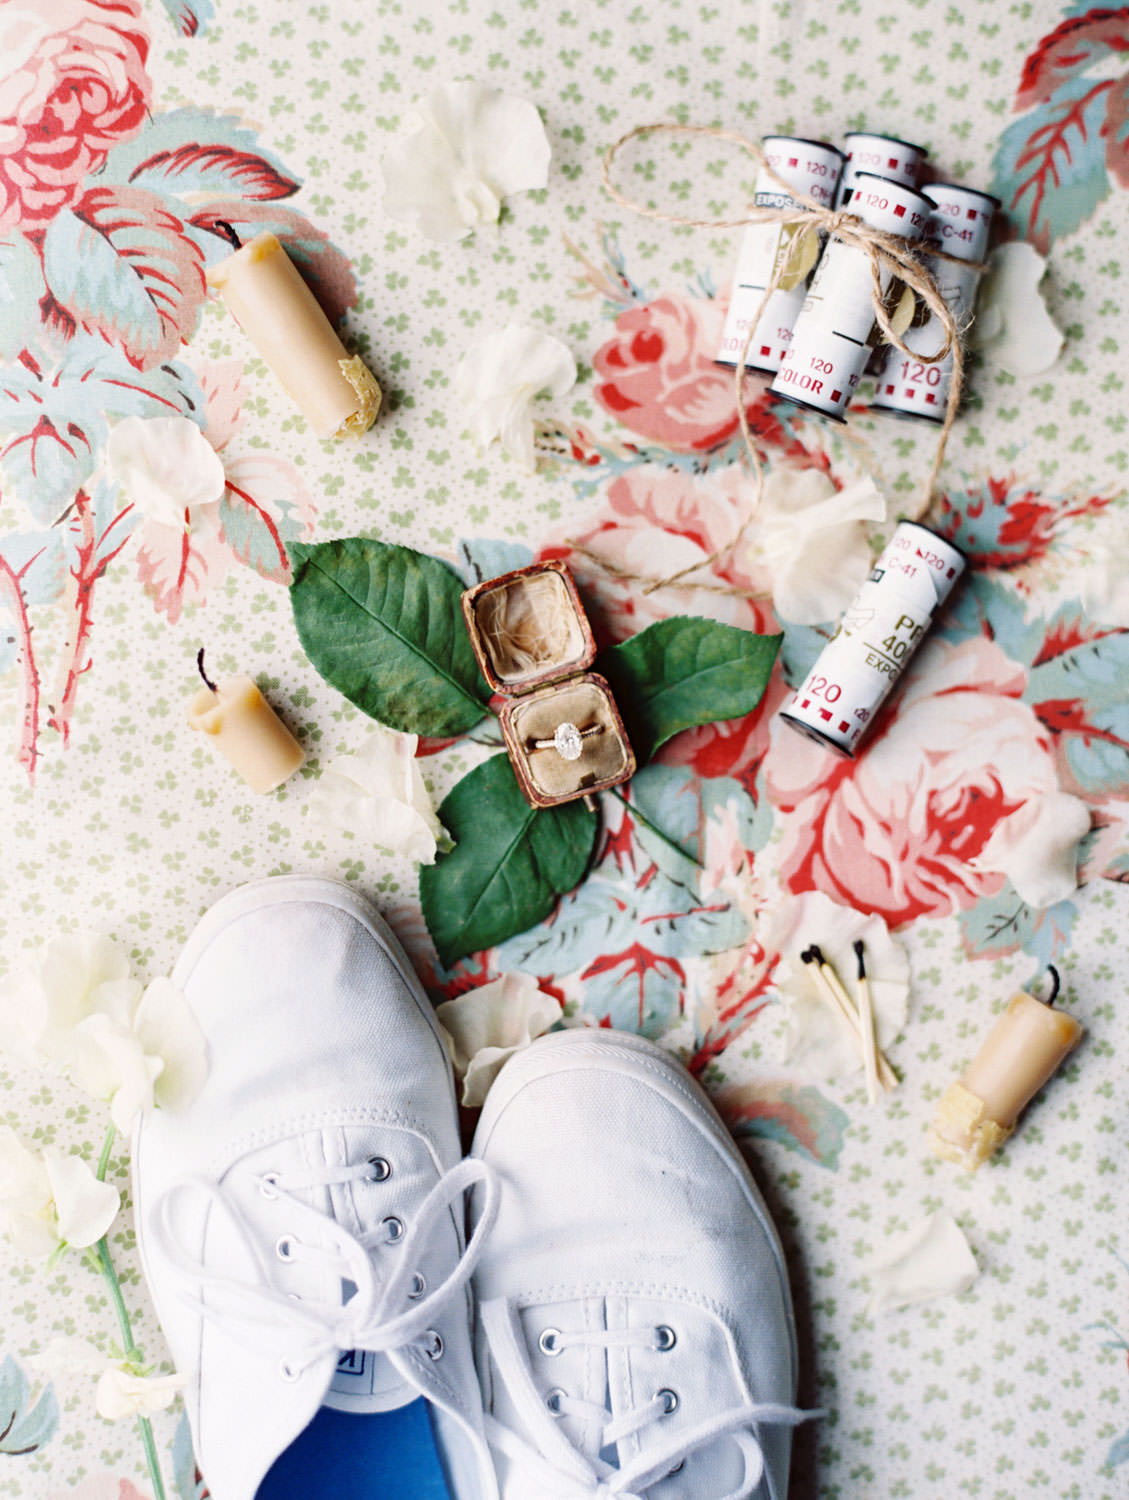 Flatlay on film of white Keds sneakers, Fuji 400h film, candles and matches, and engagement ring in a vintage ring box by Cavin Elizabeth Photography